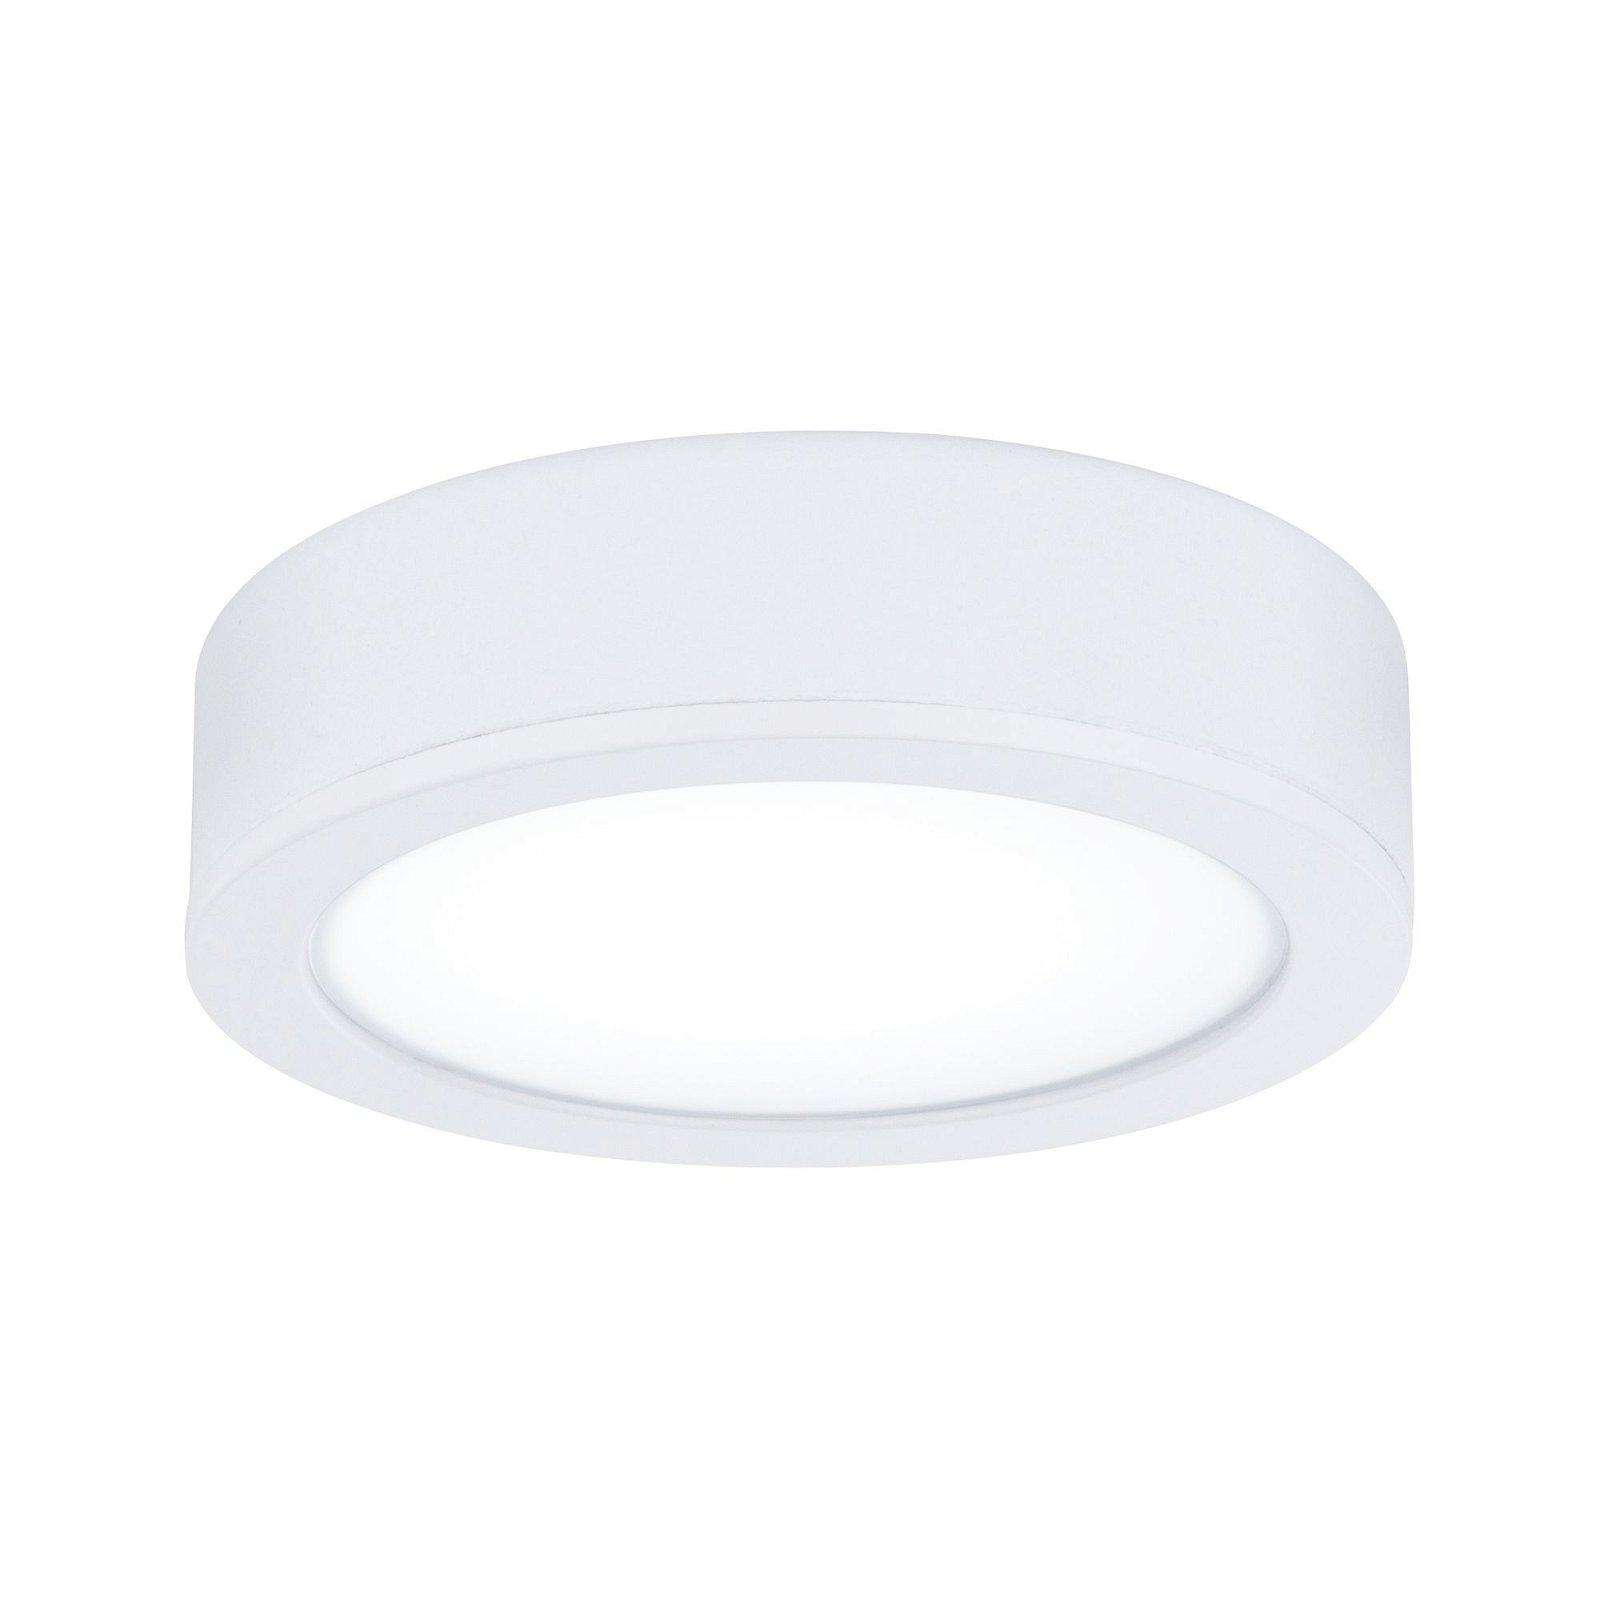 Clever Connect LED-spot Disc Tunable White 3x2,1W 12VA Wit mat